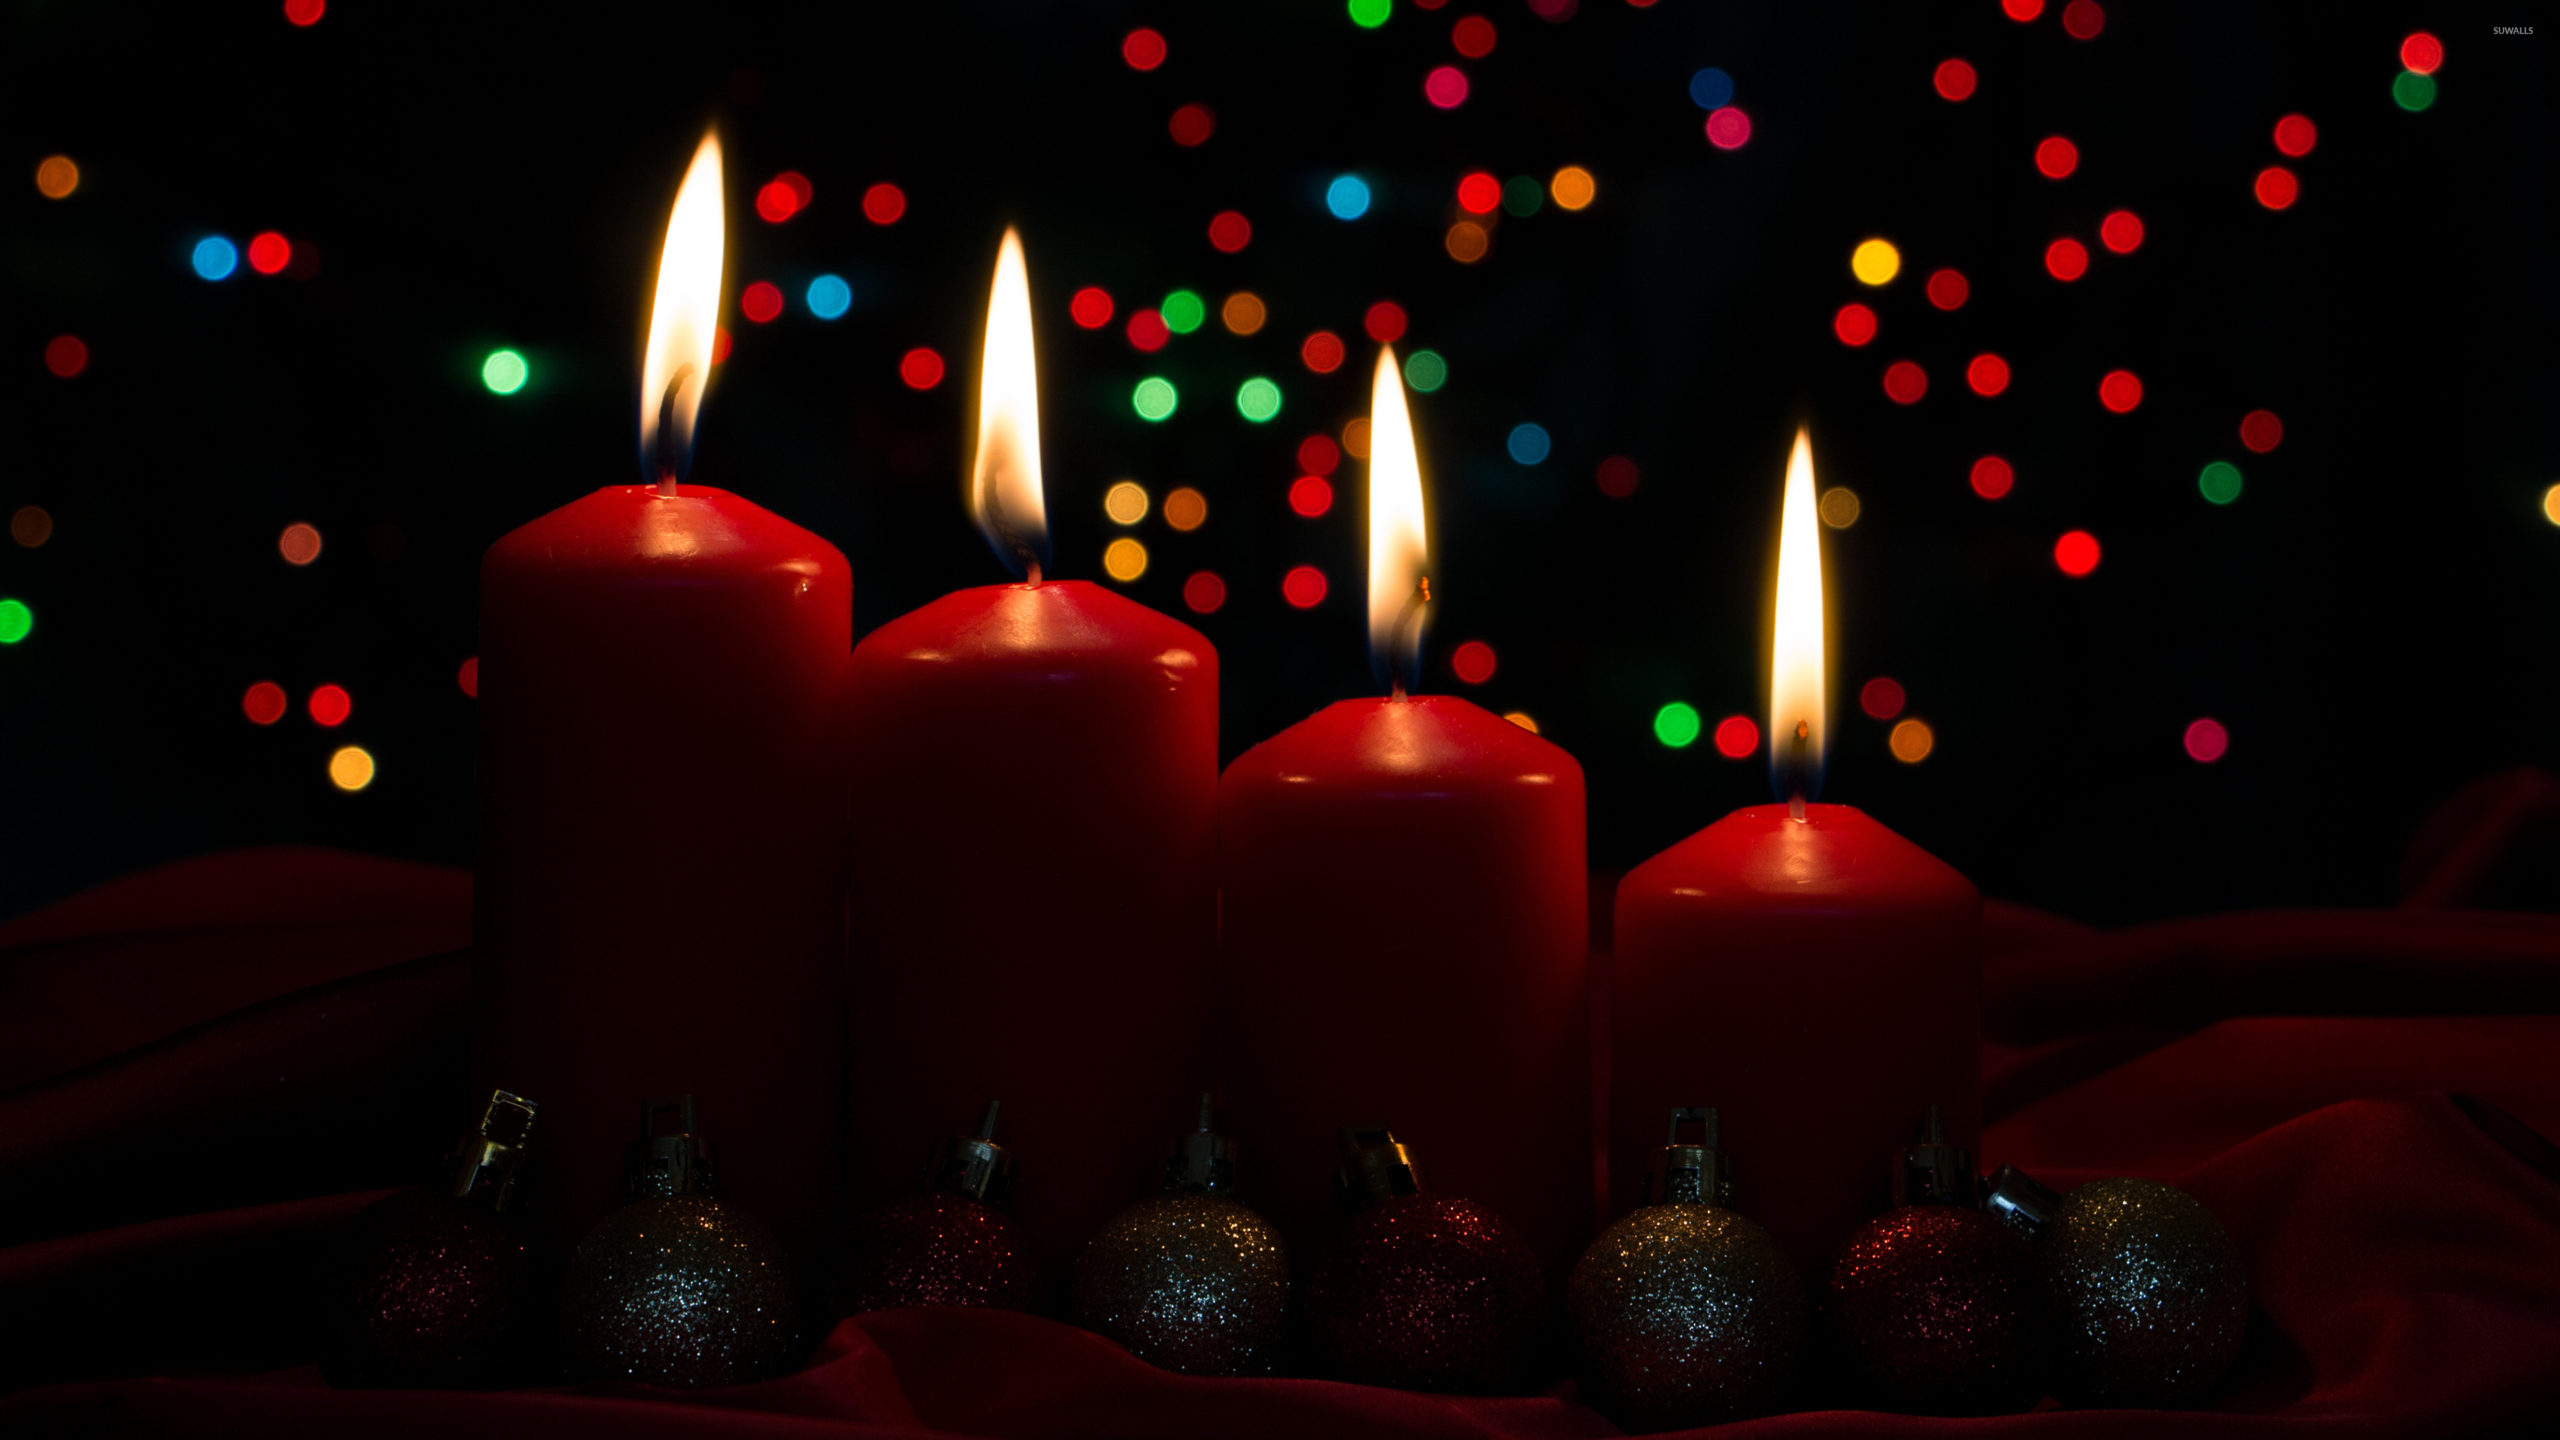 Red Advent Candles 51577 3840×2160 Wallpaper